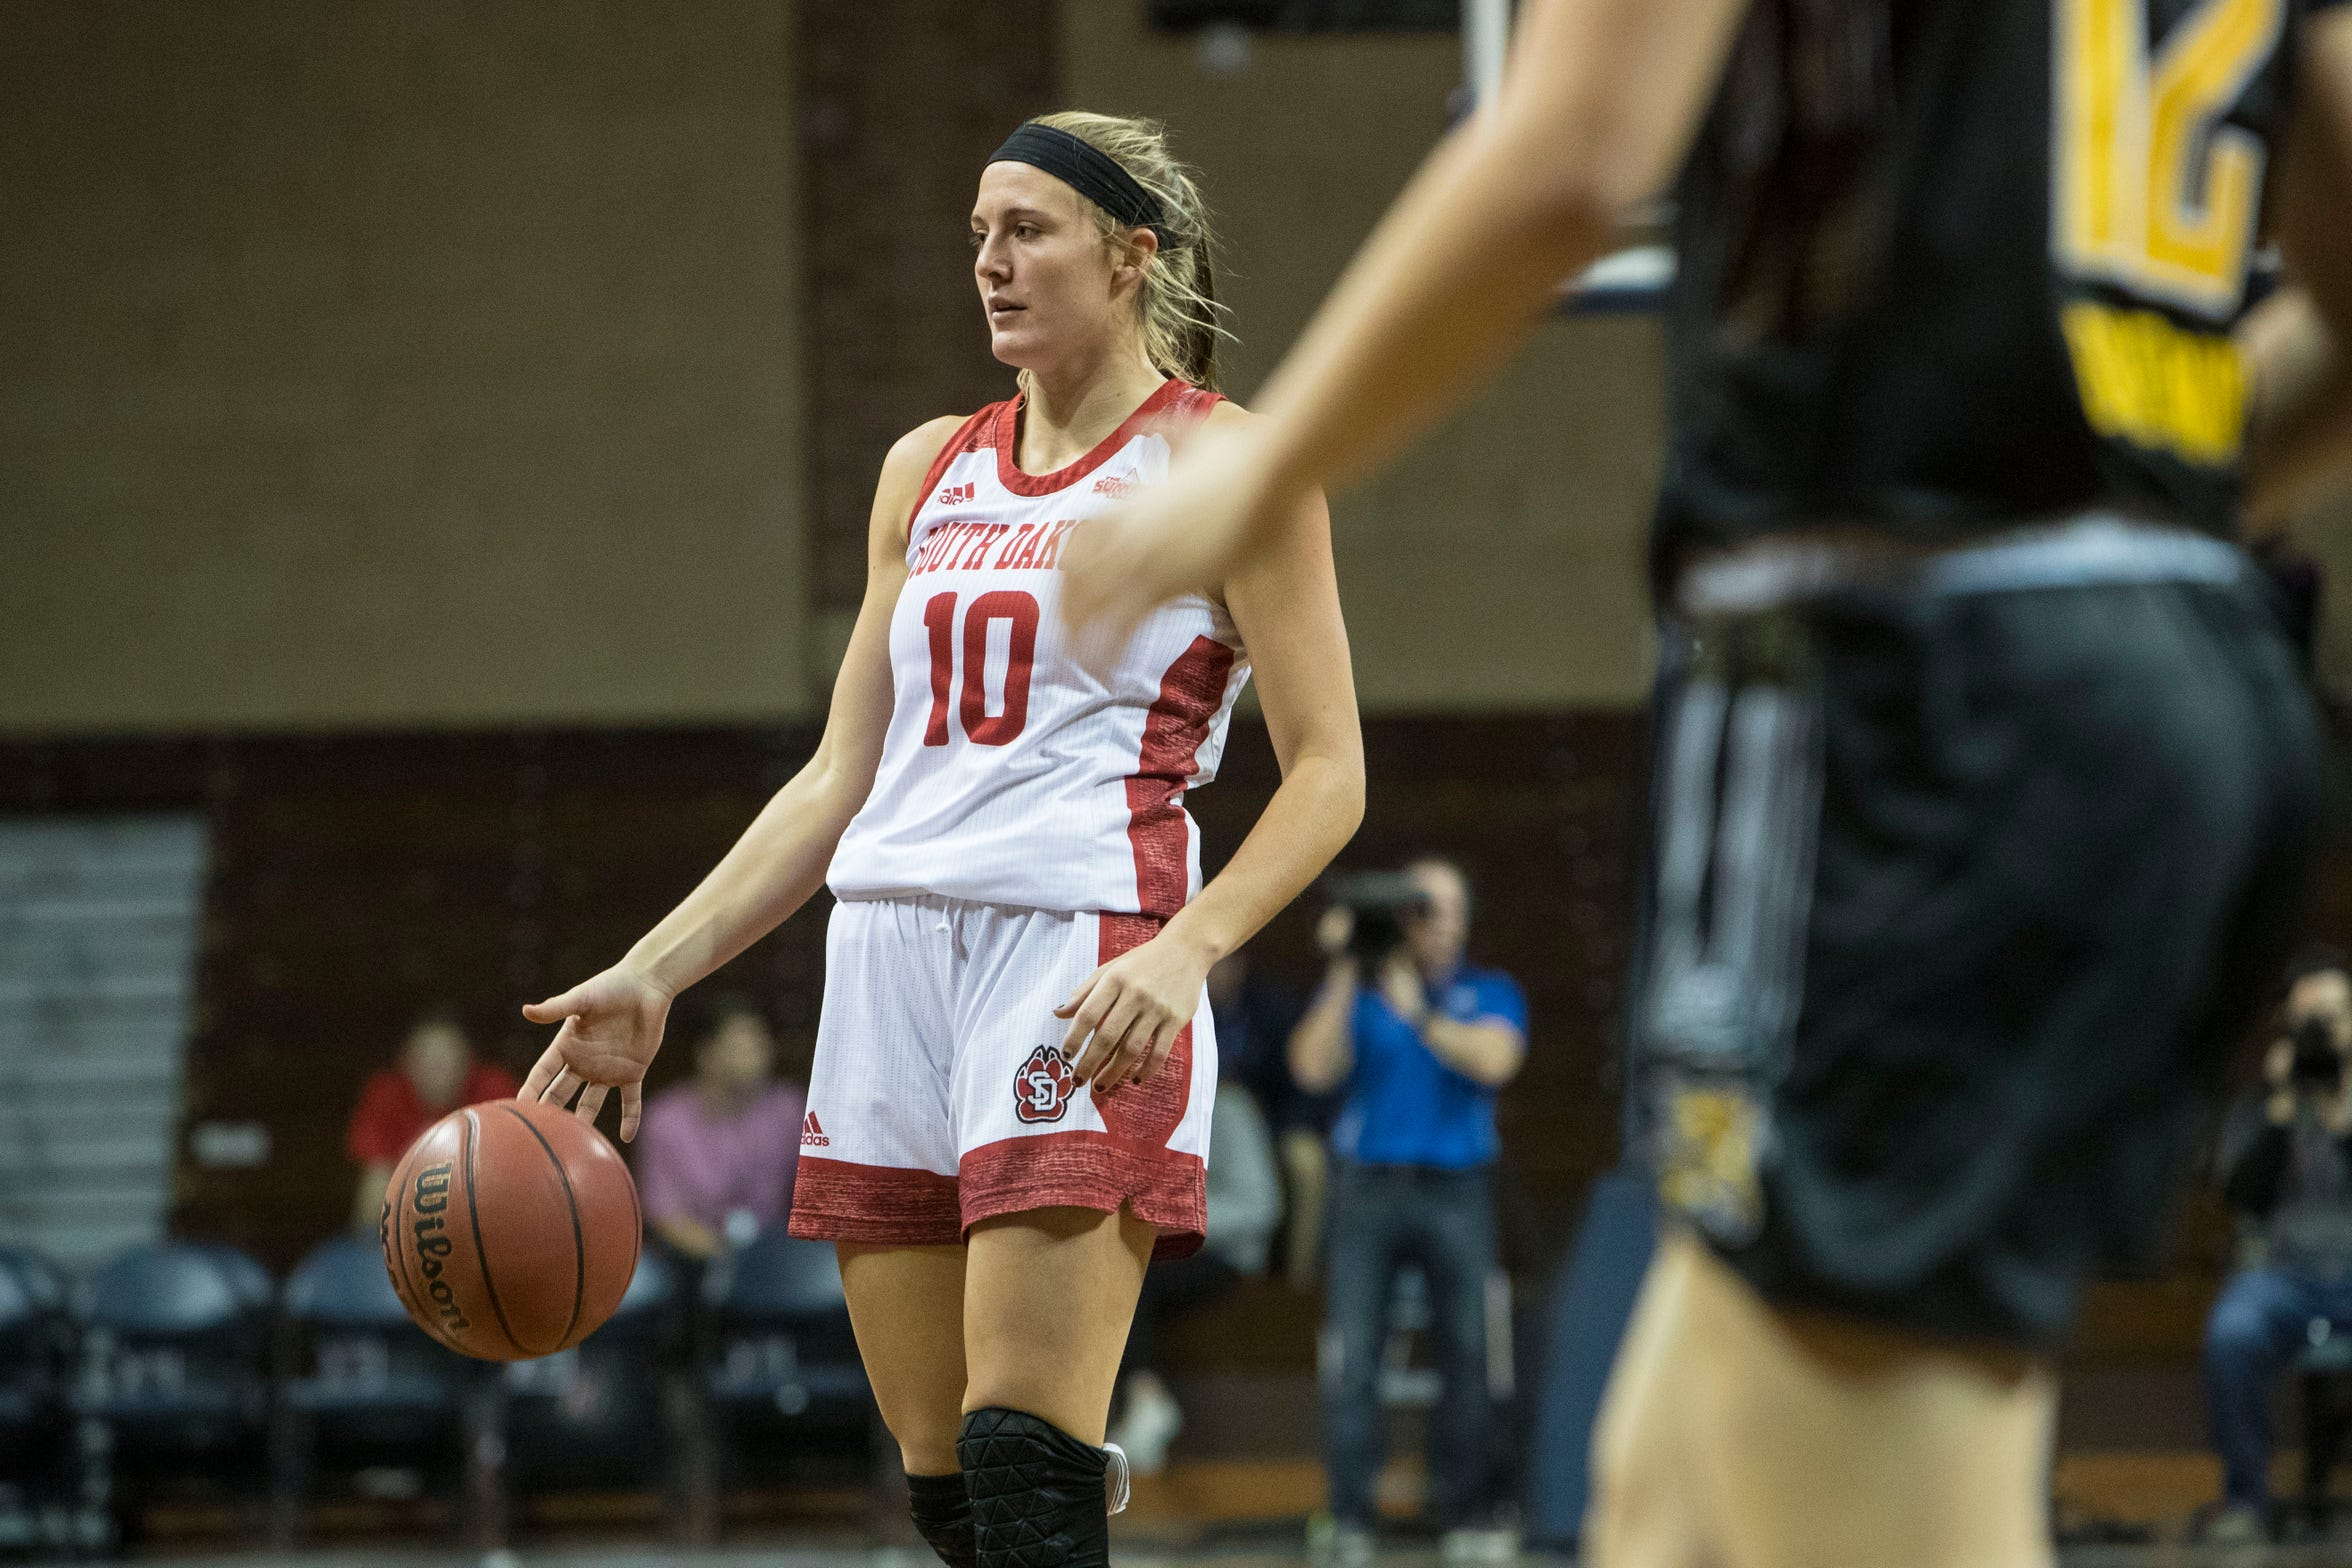 Eighth on USD's all-time scoring list, Allison Arens also ranks in the top 10 for career steals and career assists.